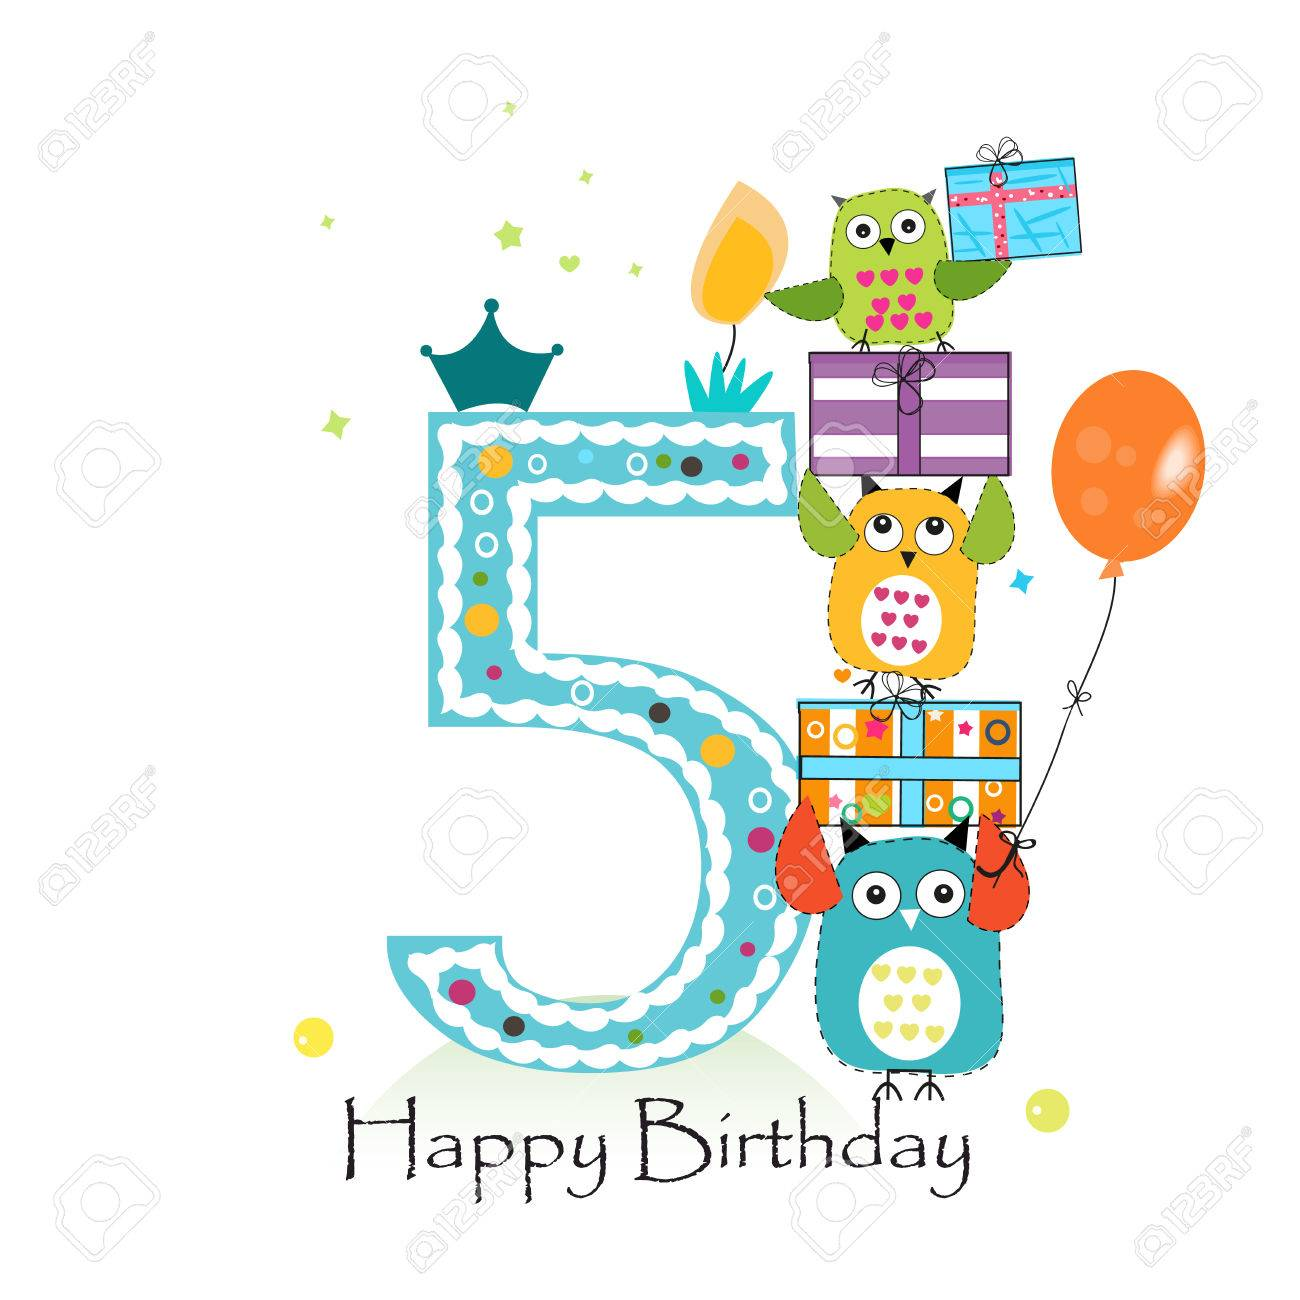 Happy Fifth Birthday With Owls And Gift Box Baby Boy Birthday Royalty Free Cliparts Vectors And Stock Illustration Image 66080303